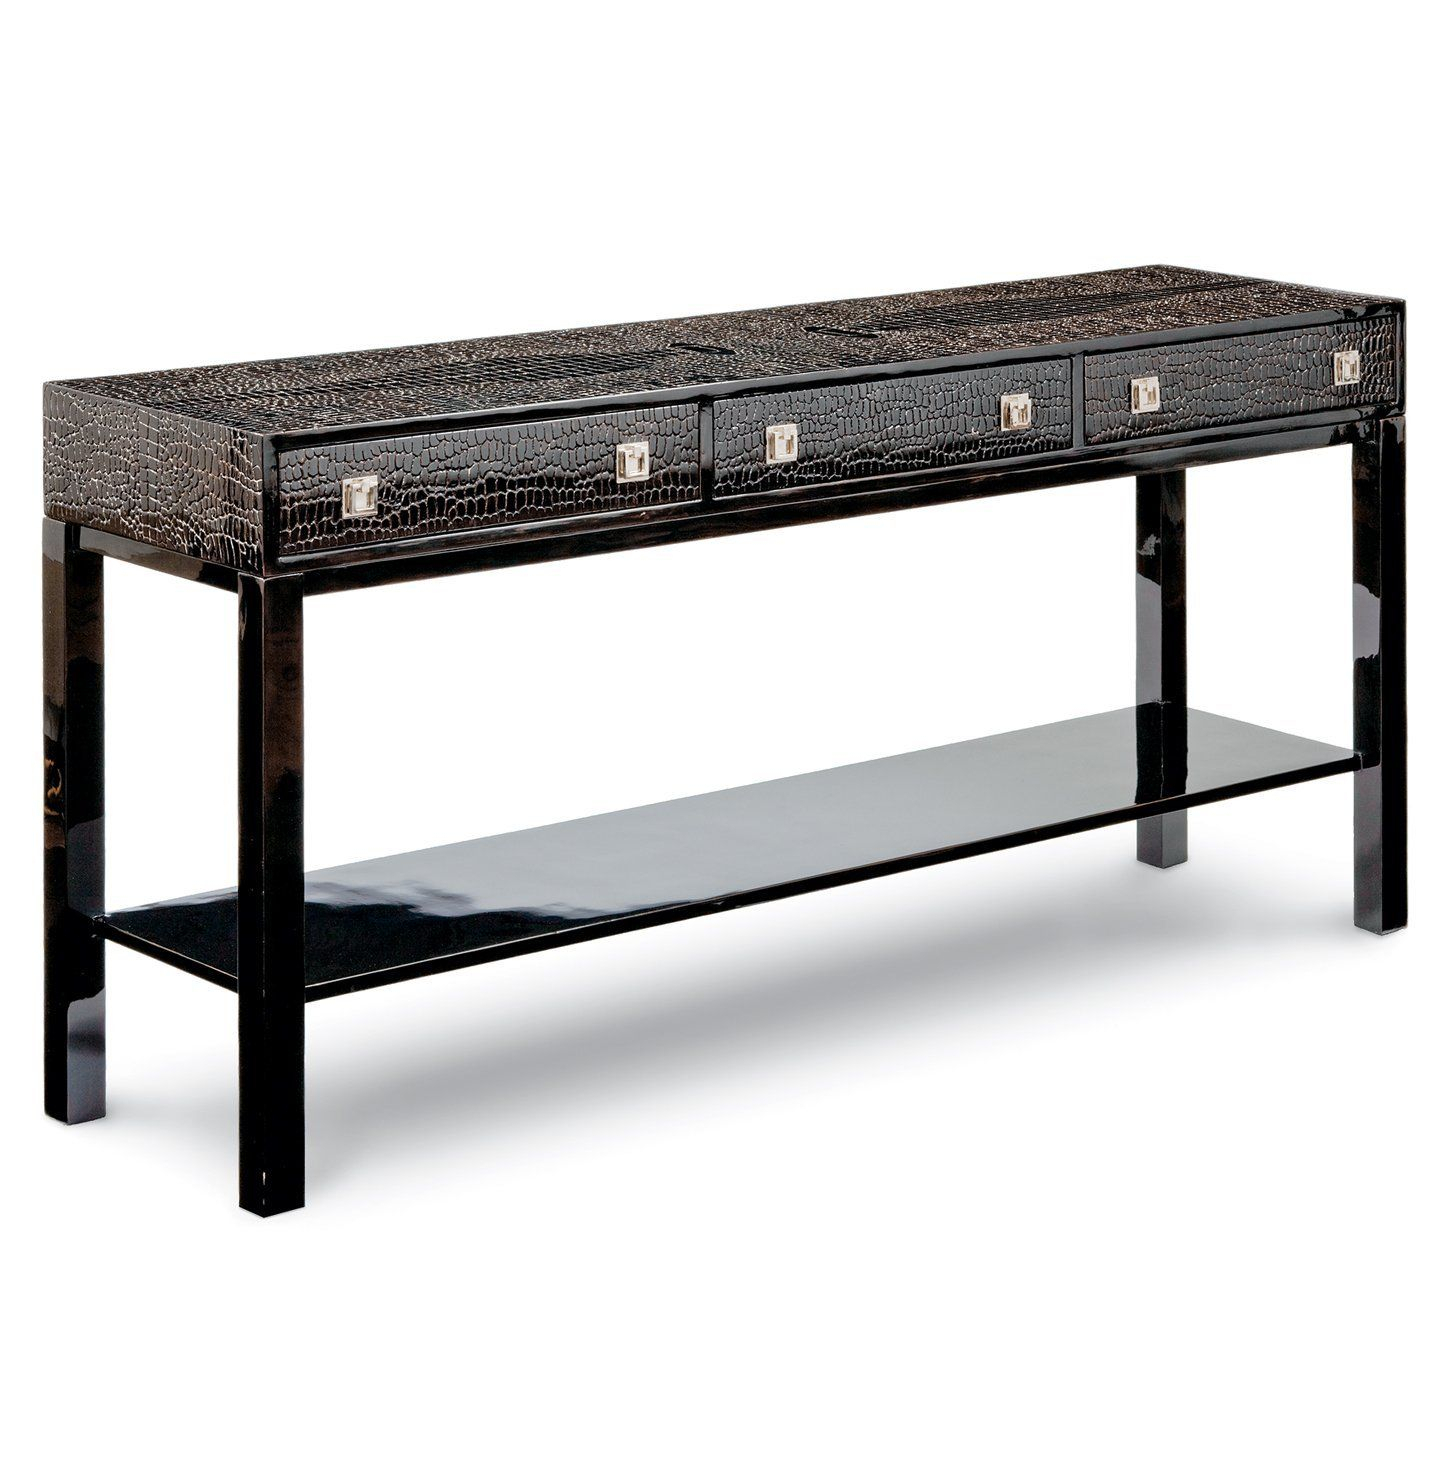 Amazon - Irwin Hollywood Regency Brown Faux Crocodile Lacquer within Ventana Display Console Tables (Image 3 of 30)